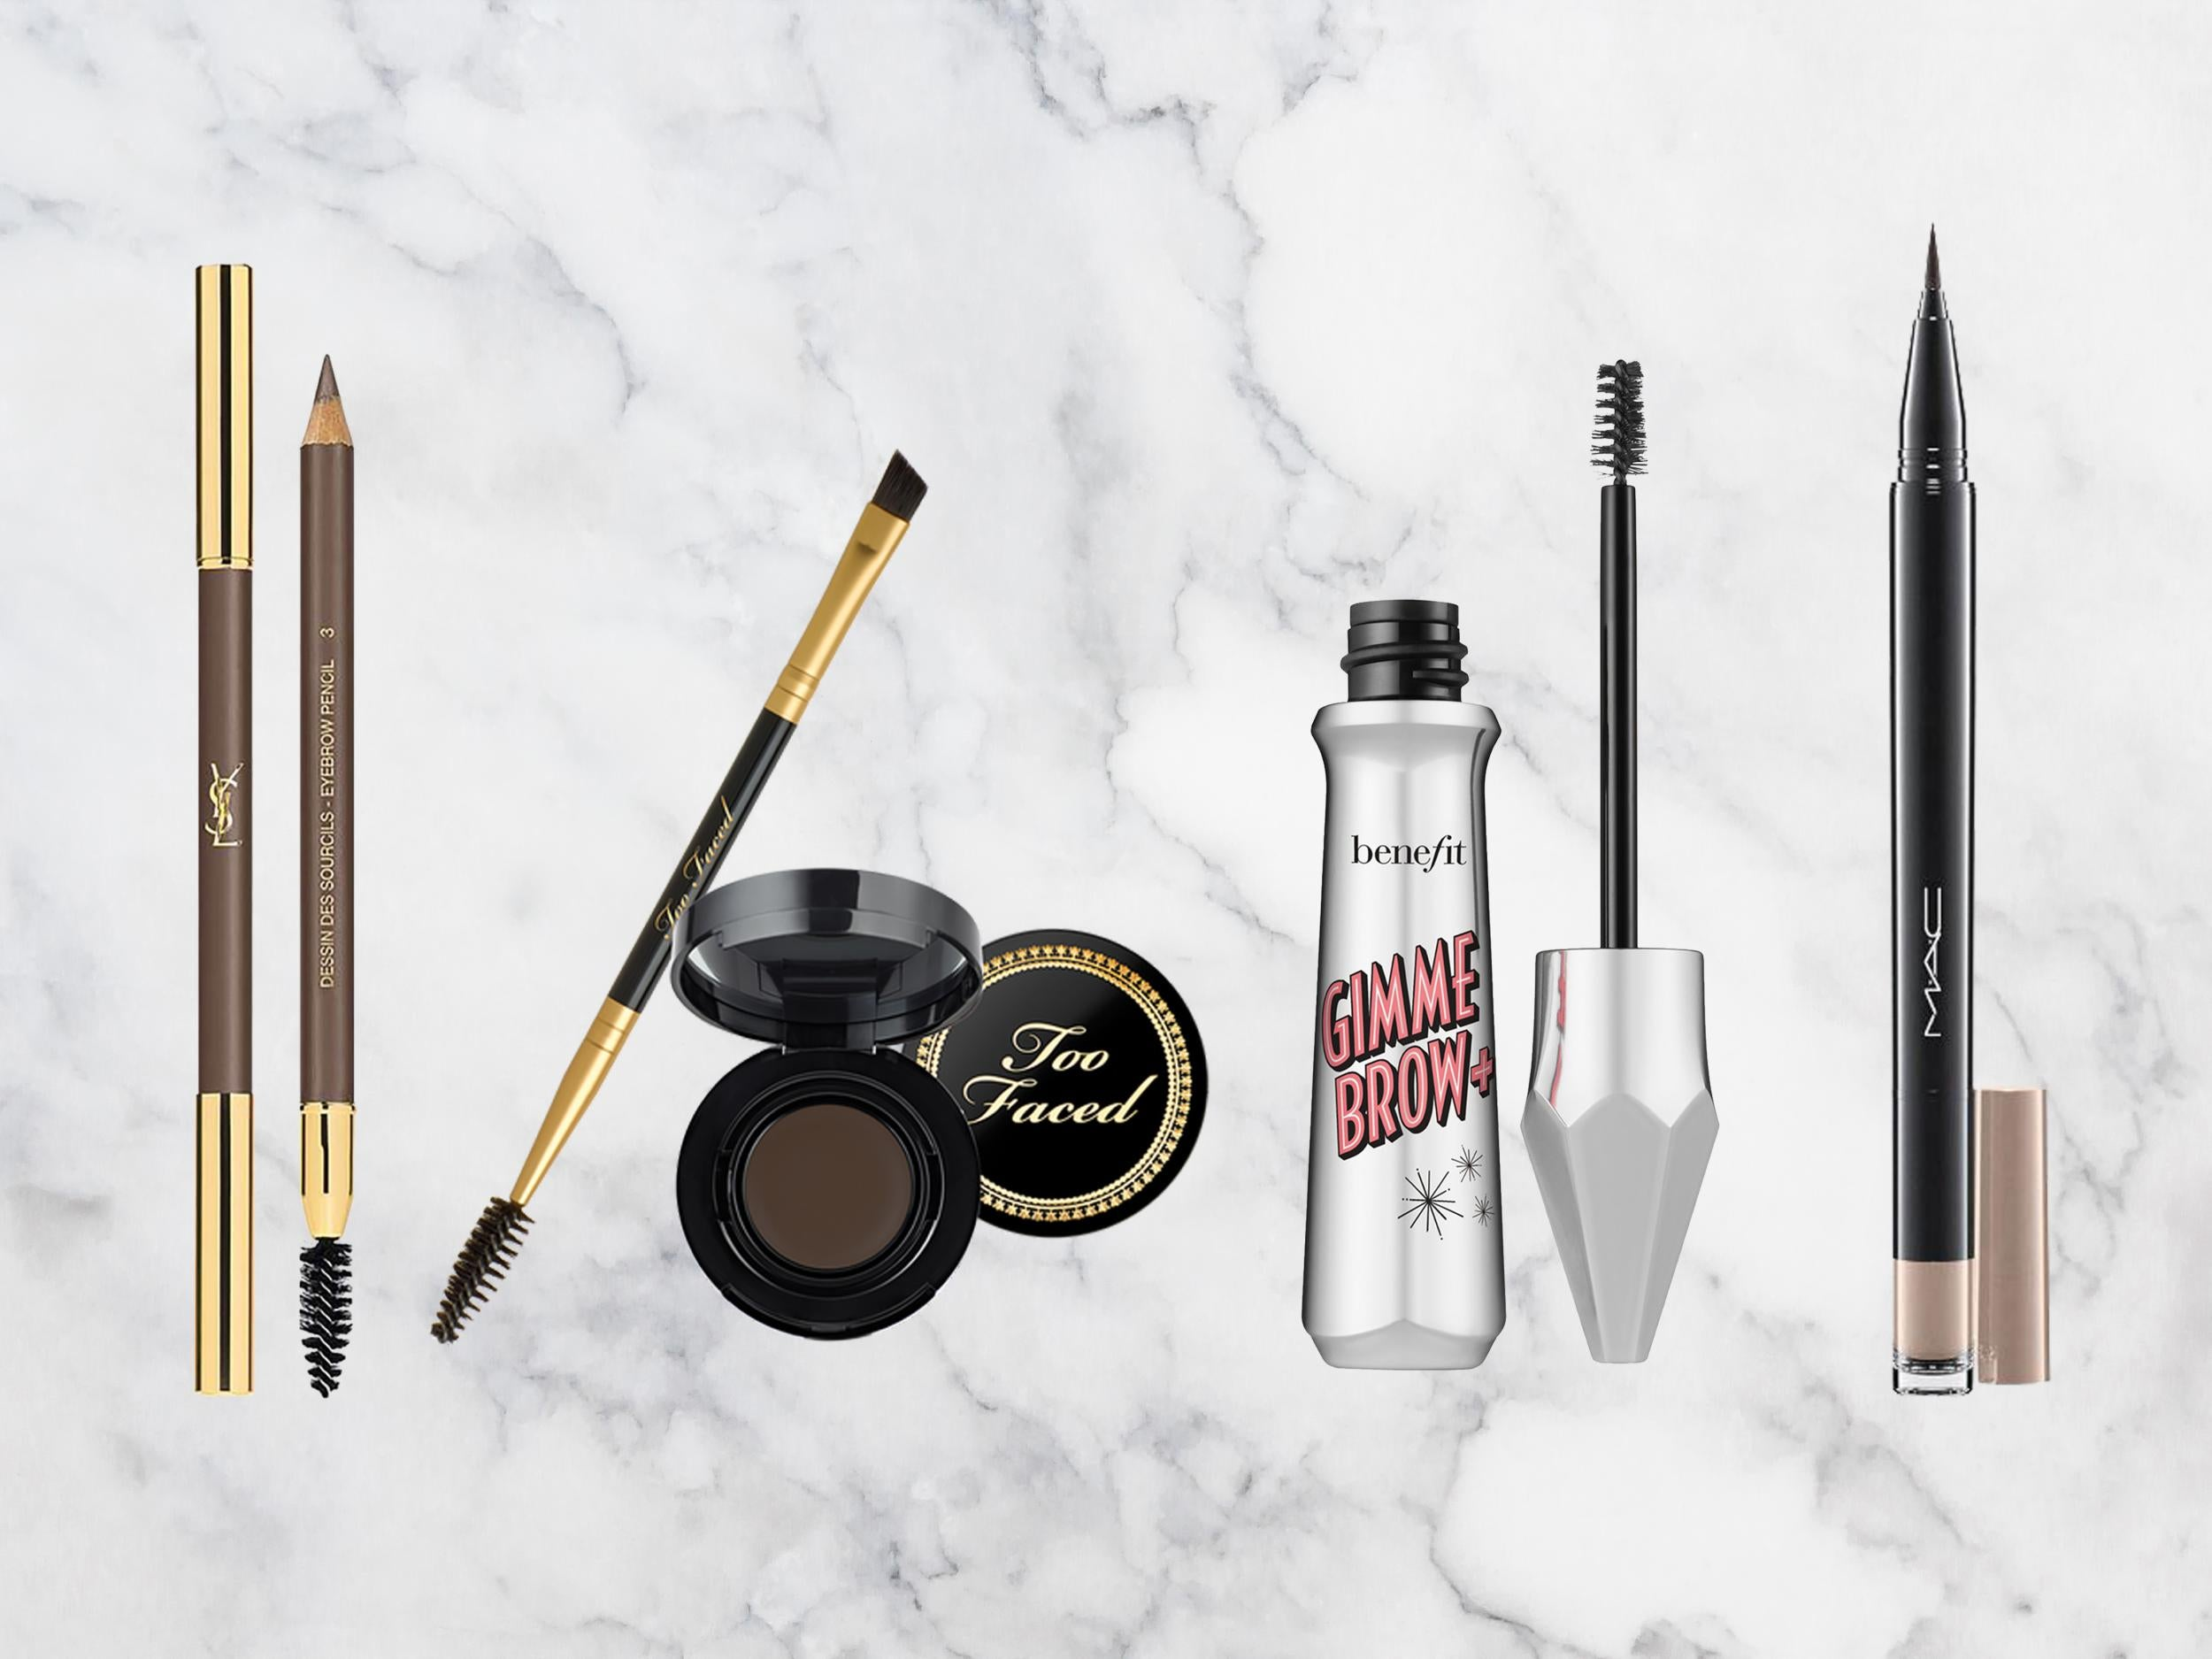 10 best eyebrow products: Pencils, gels and pomades that shape and